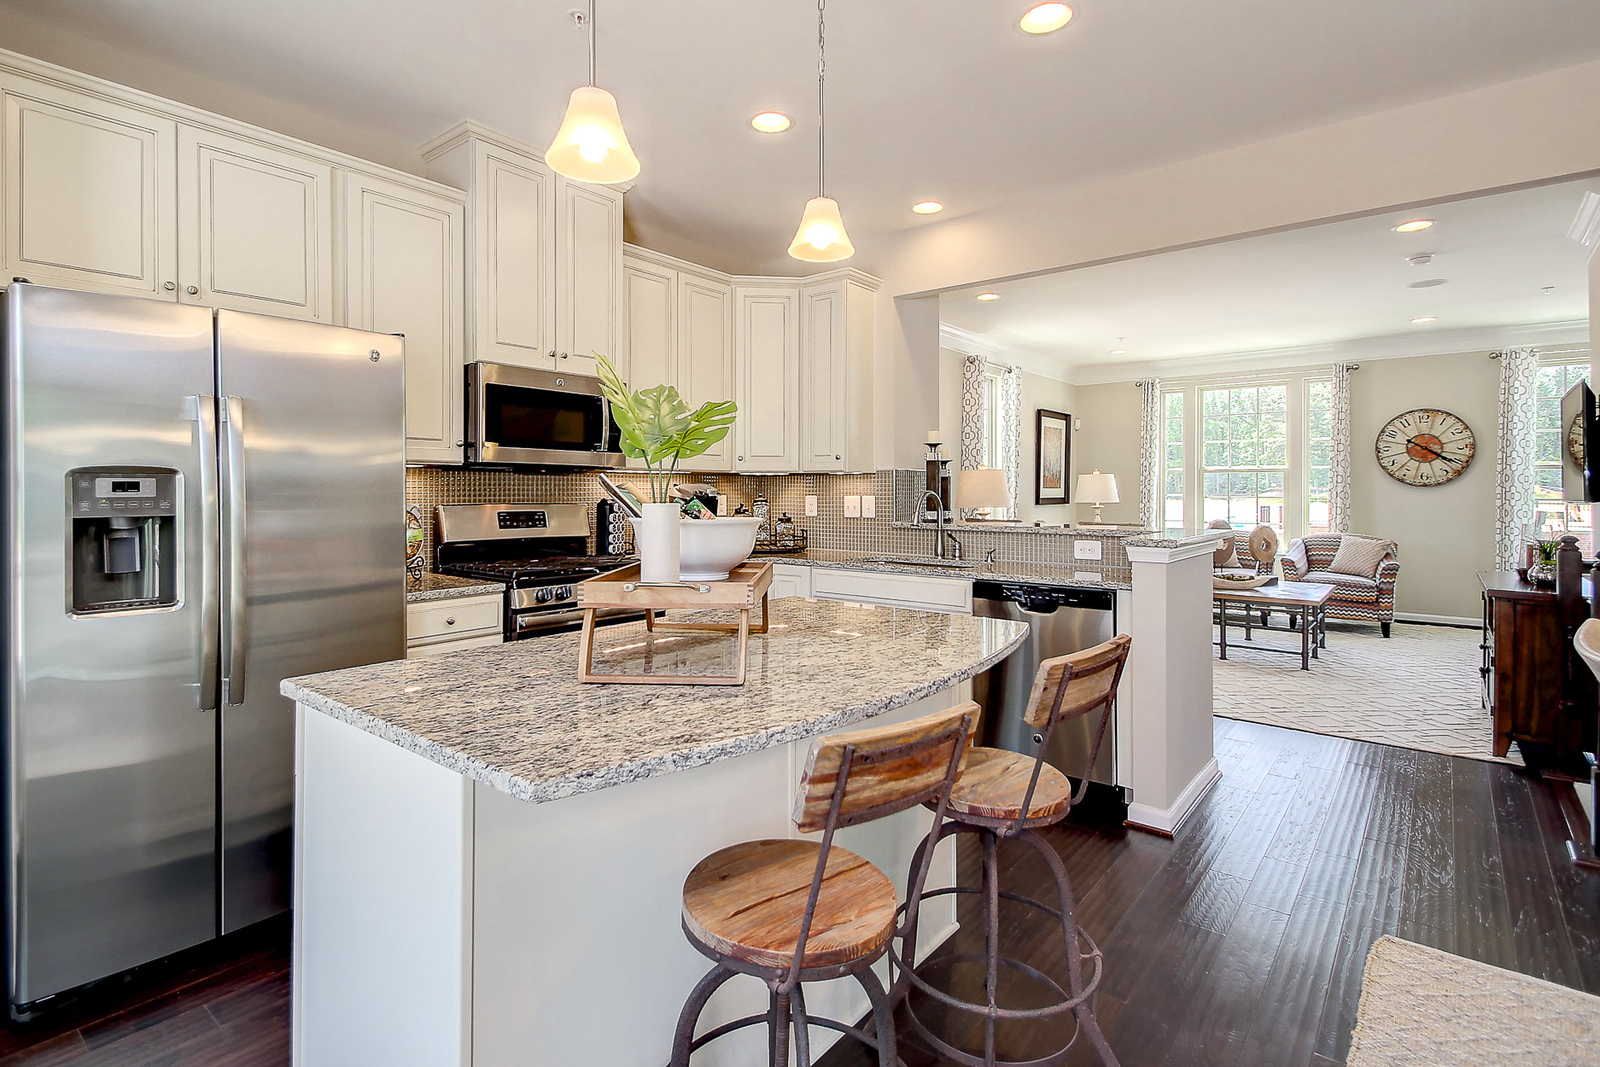 New Homes For Sale At Morningside Mews In Charlotte NC Within The